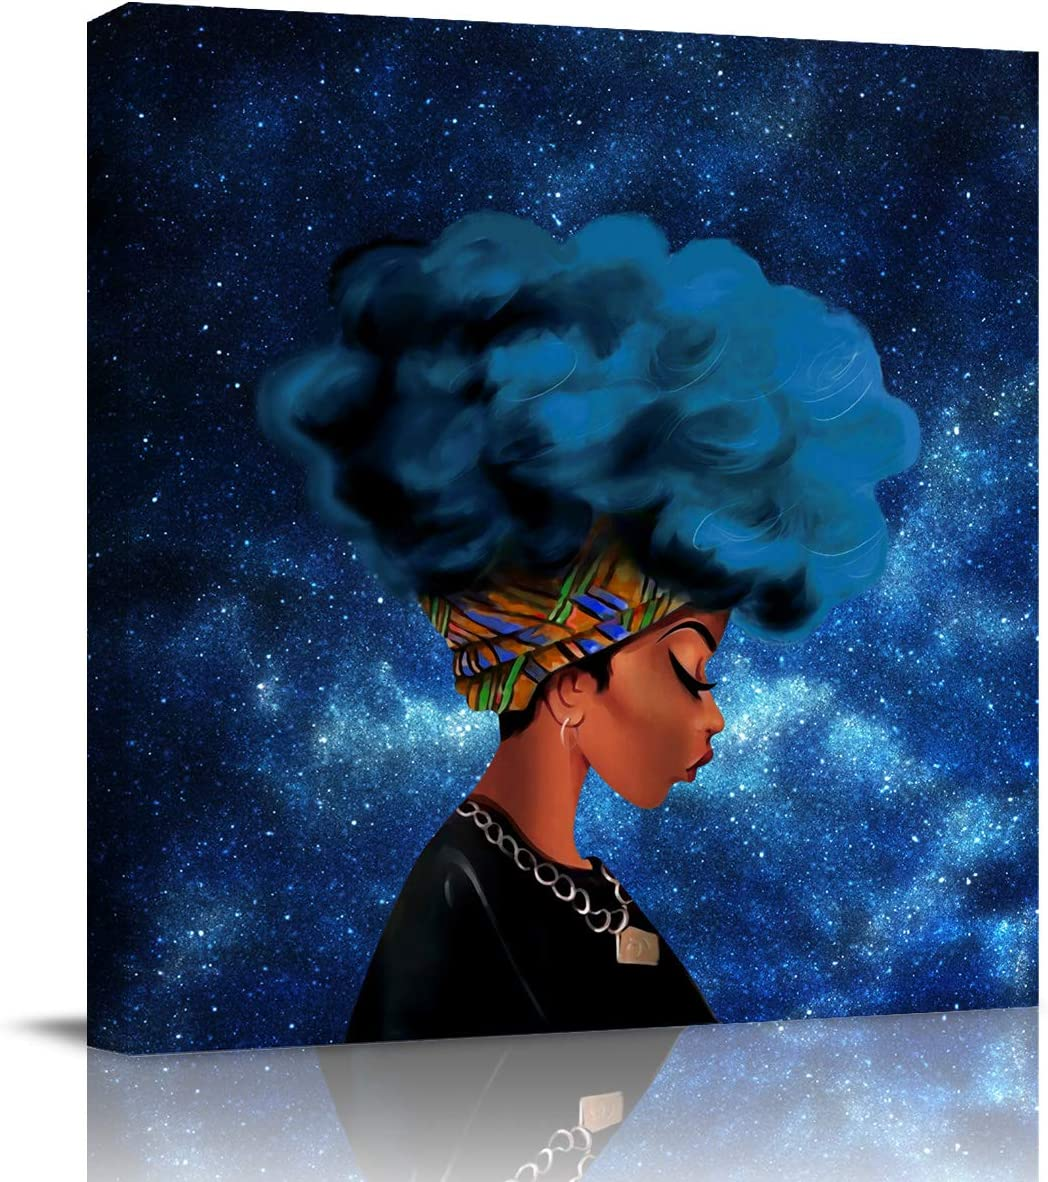 """Oil Painting Canvas African Black Women with Blue Hair Afro Hairstyle Wall Art Framed Decor HD Digital Printing Drawn Interior Decoration Artwork 12""""x12"""" Ready to Hang Galaxy Background"""